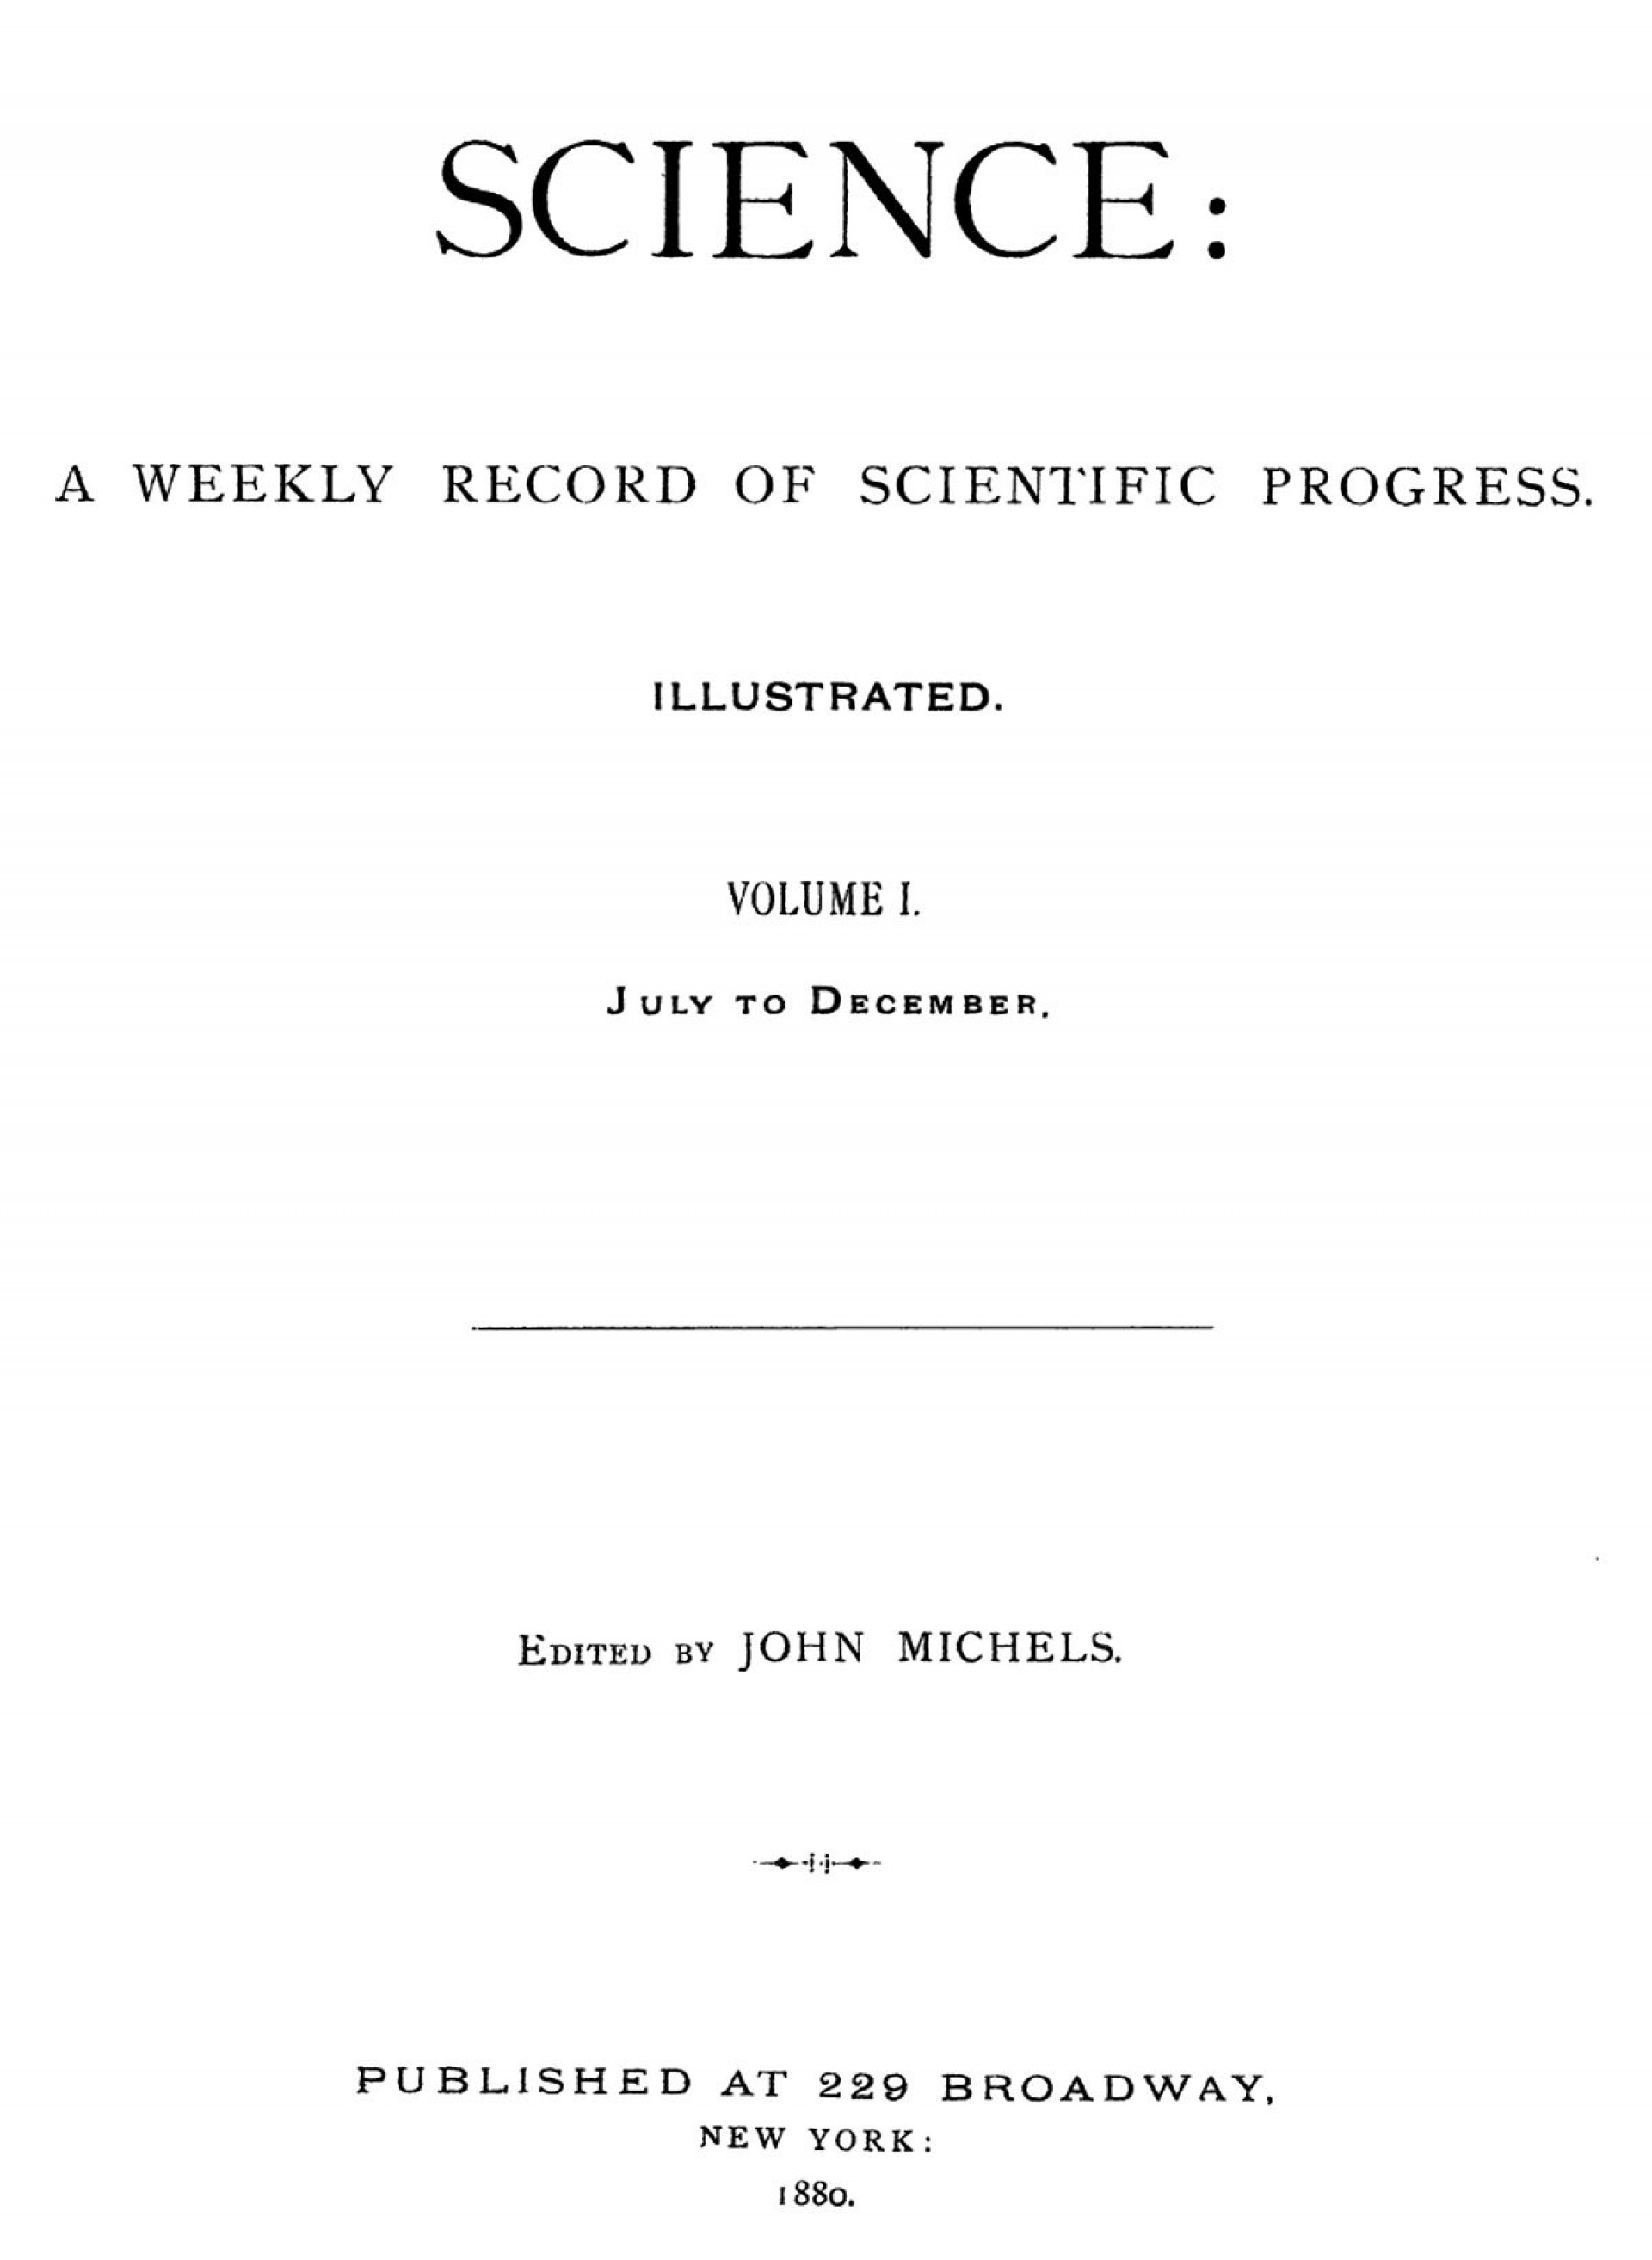 011 Free Online Journals Researchs 1200px Science Vol  1 28188029 Unique Research Papers1920